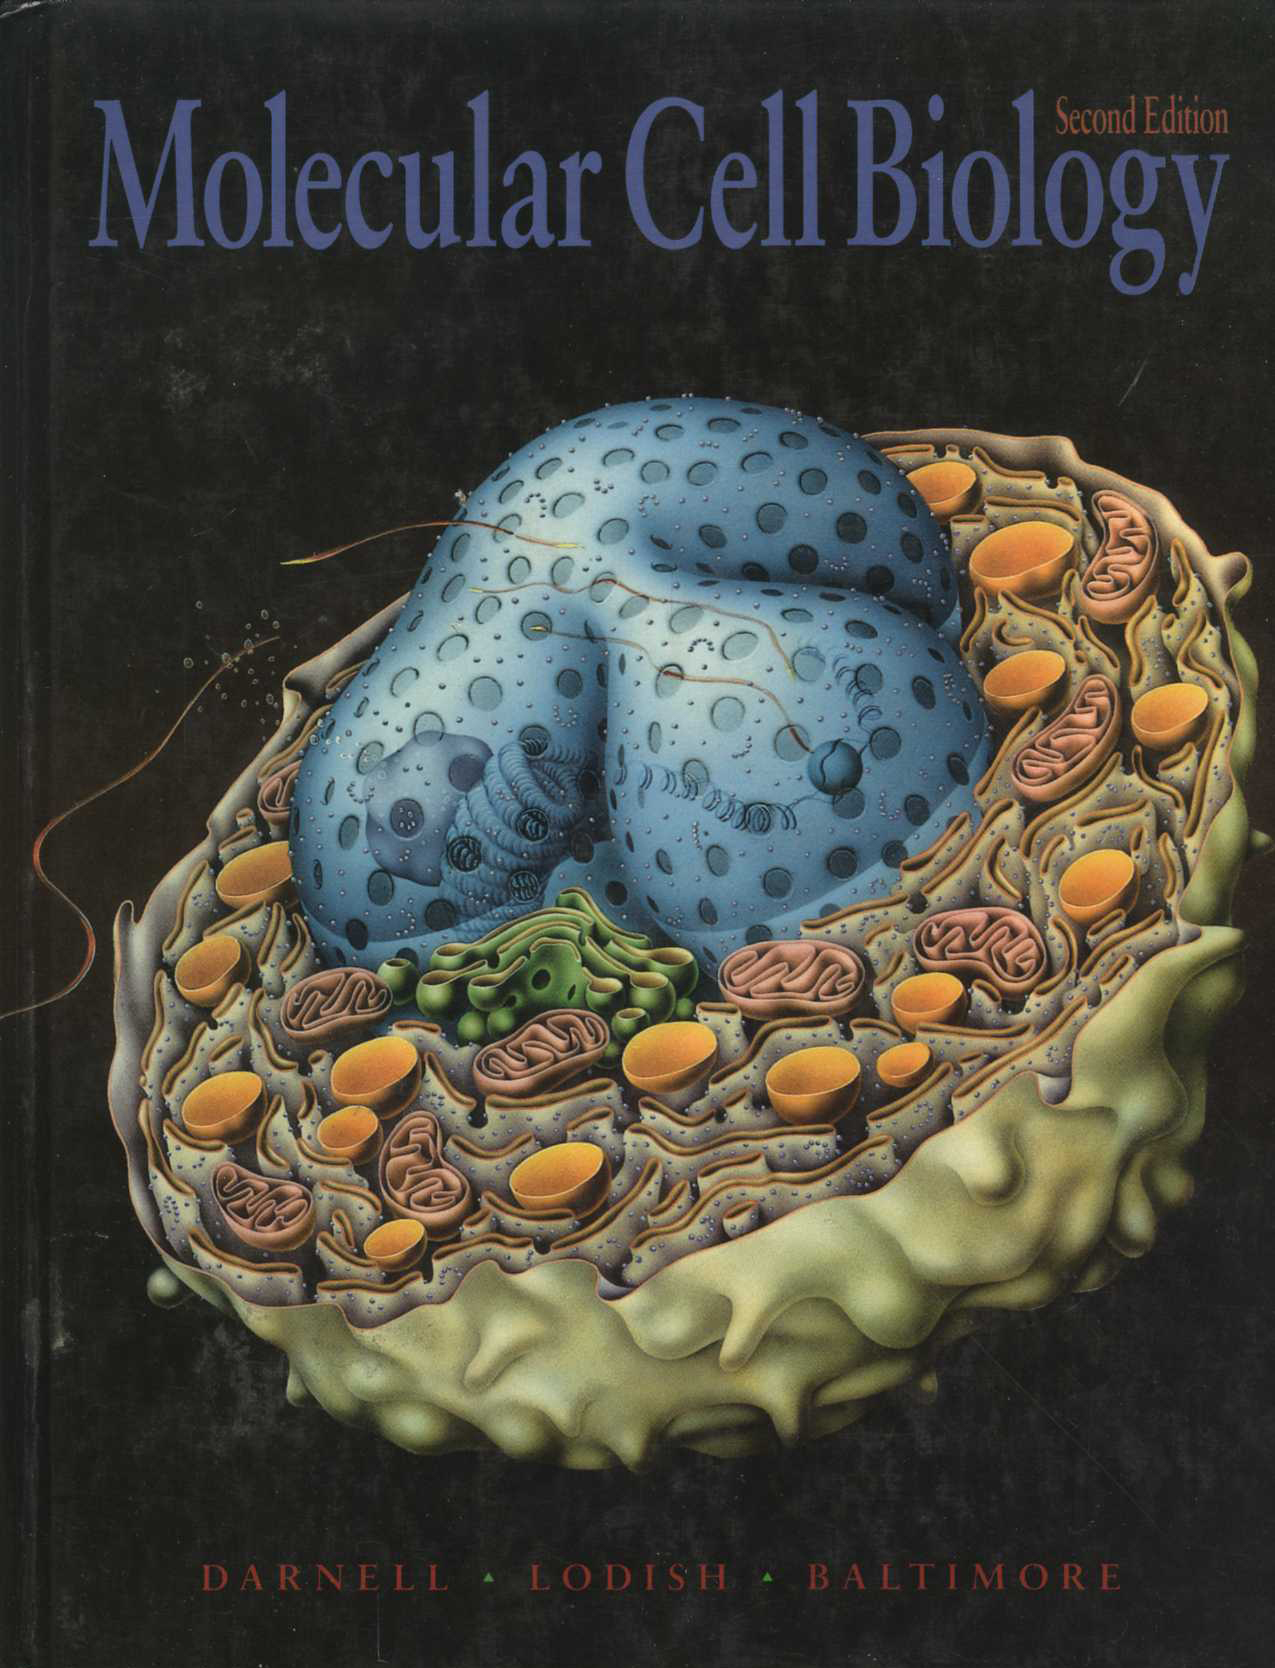 Molecular Cell Biology (Darnell, Lodish, Baltimore)